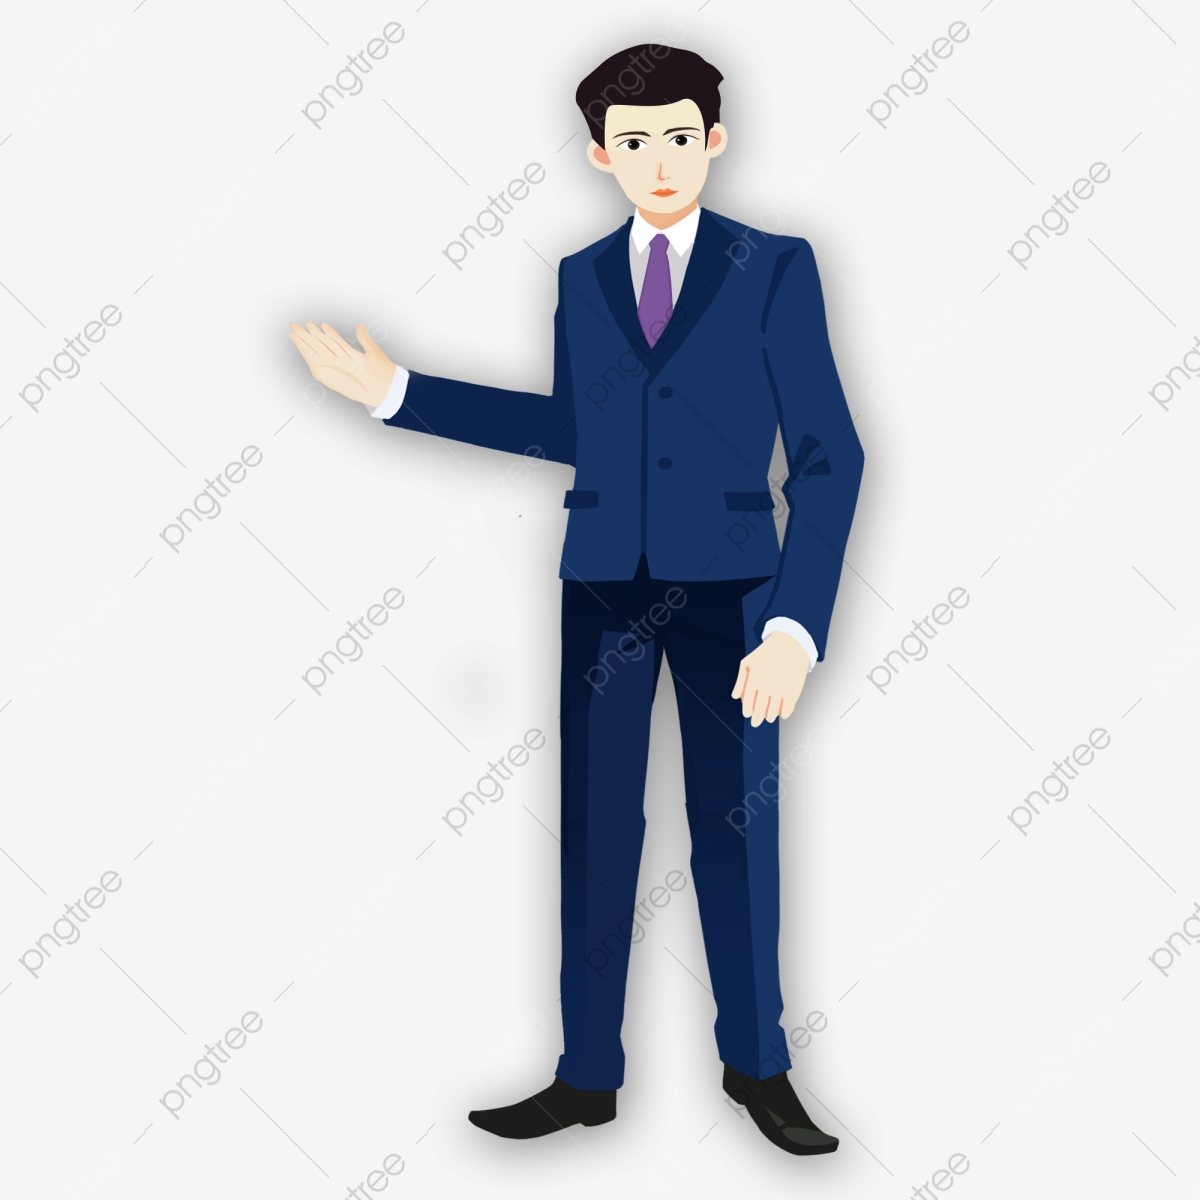 Free Silhouette Man In Suit, Download Free Clip Art, Free Clip Art on  Clipart Library